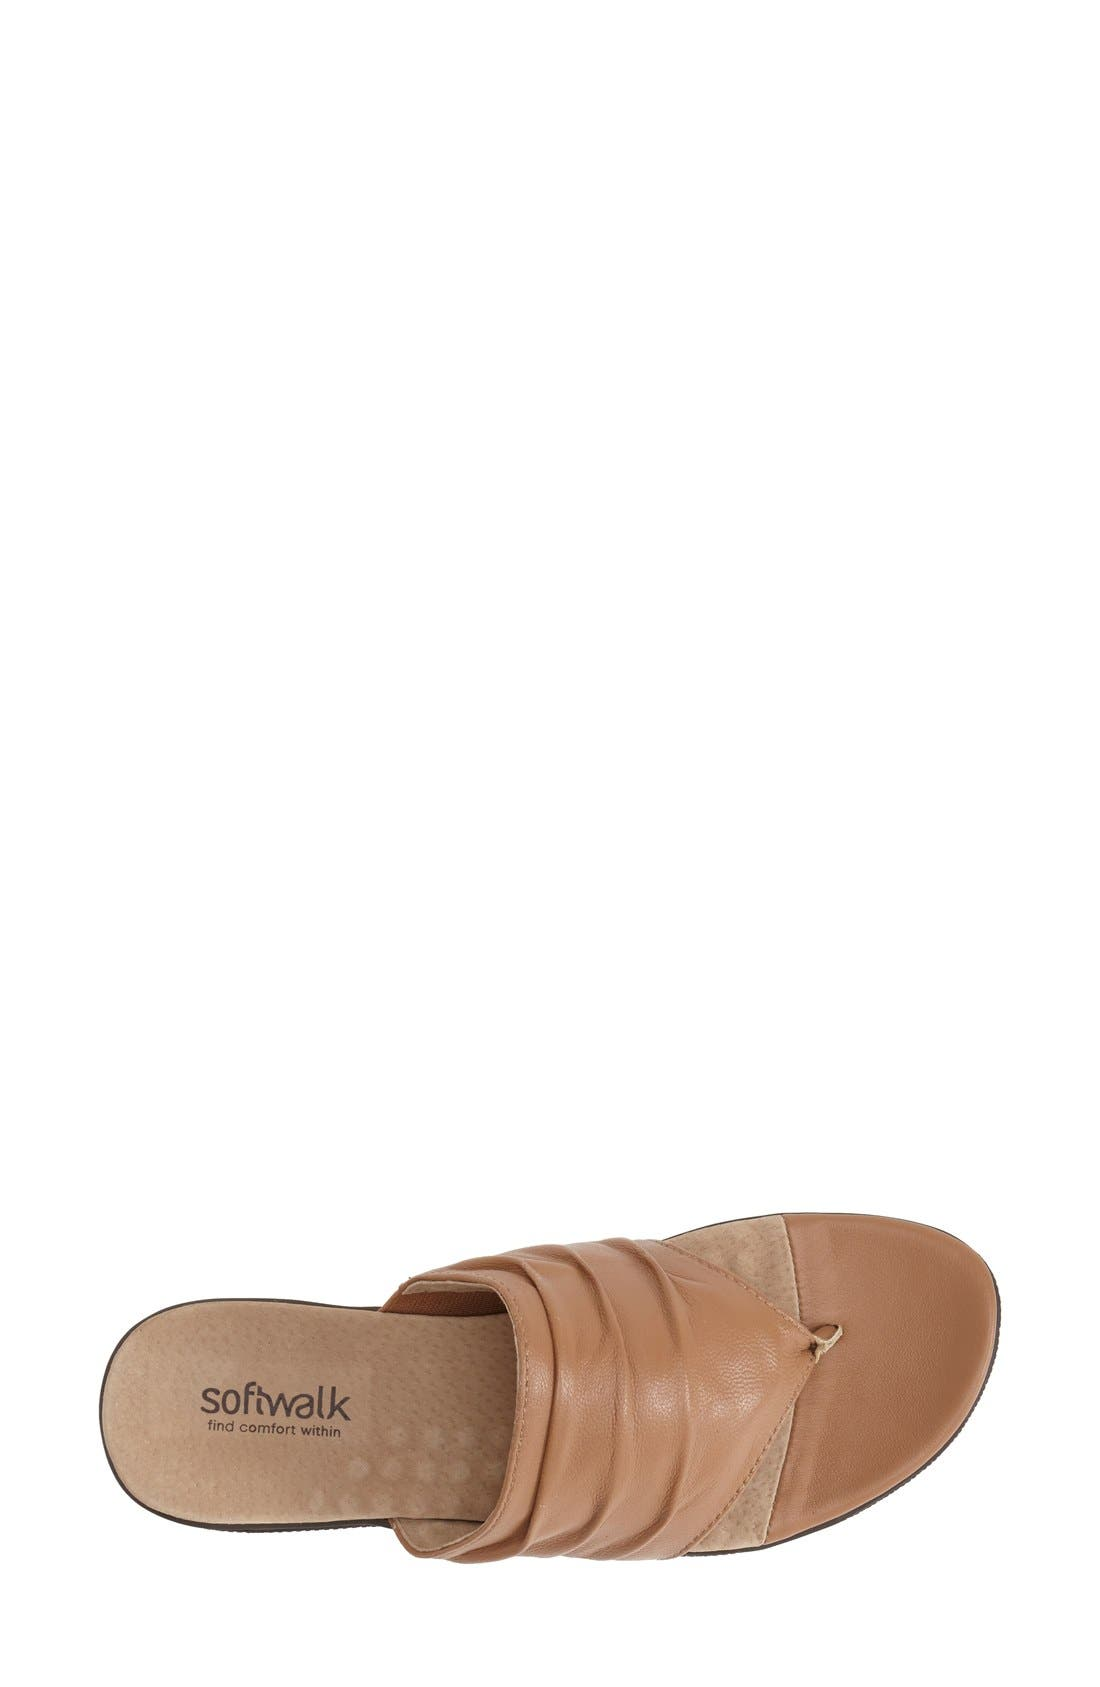 'Toma' Thong Sandal,                             Alternate thumbnail 3, color,                             Tan